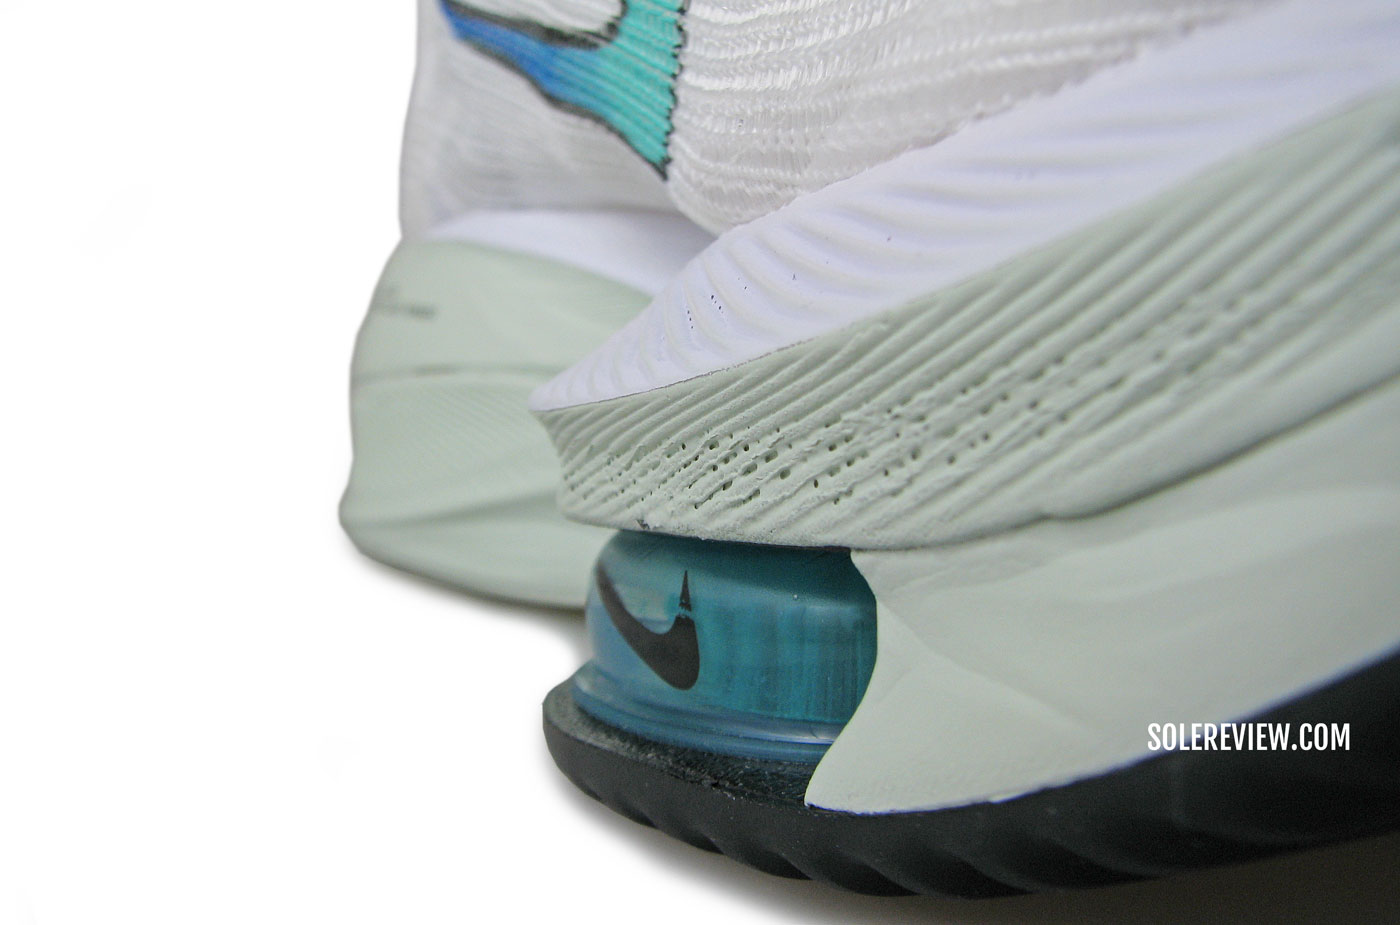 Nike_Alphafly_Next_flared_forefoot